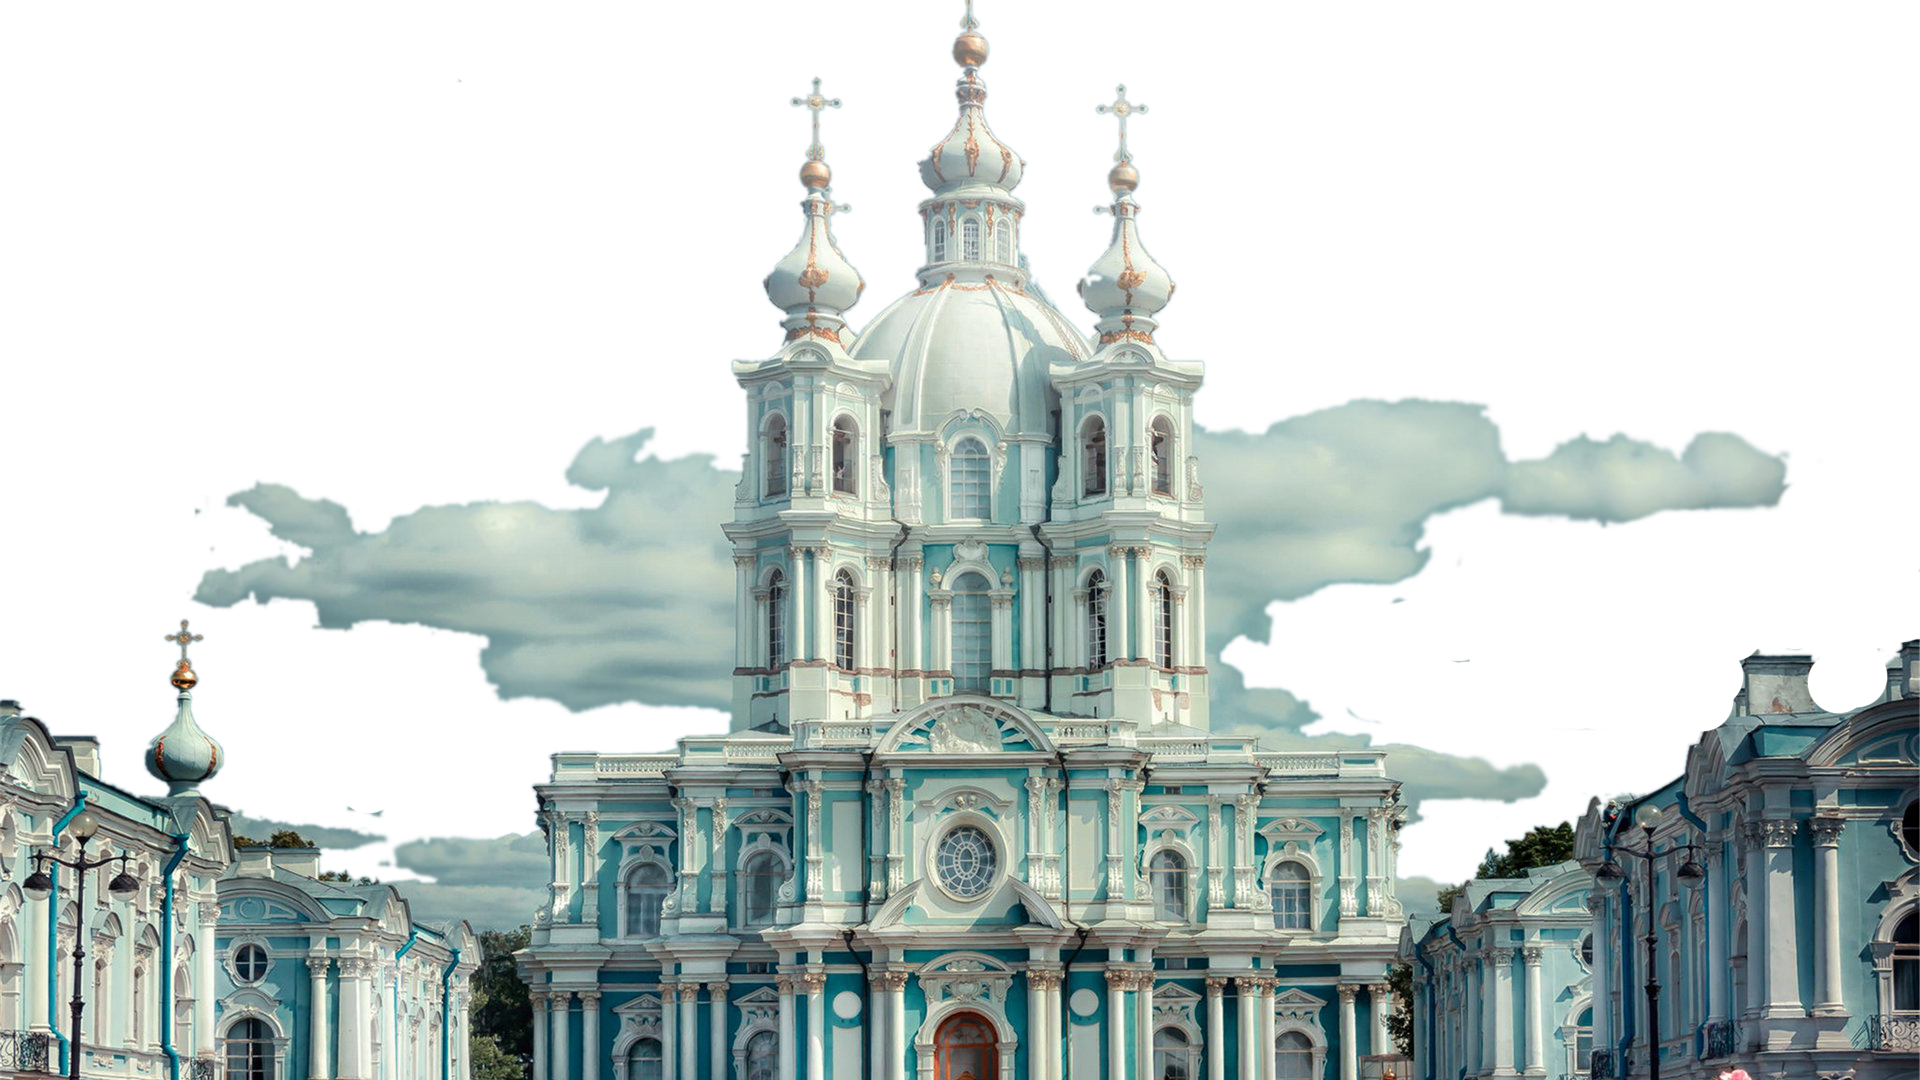 Building Convent Smolny Facade Architecture Russian PNG Image